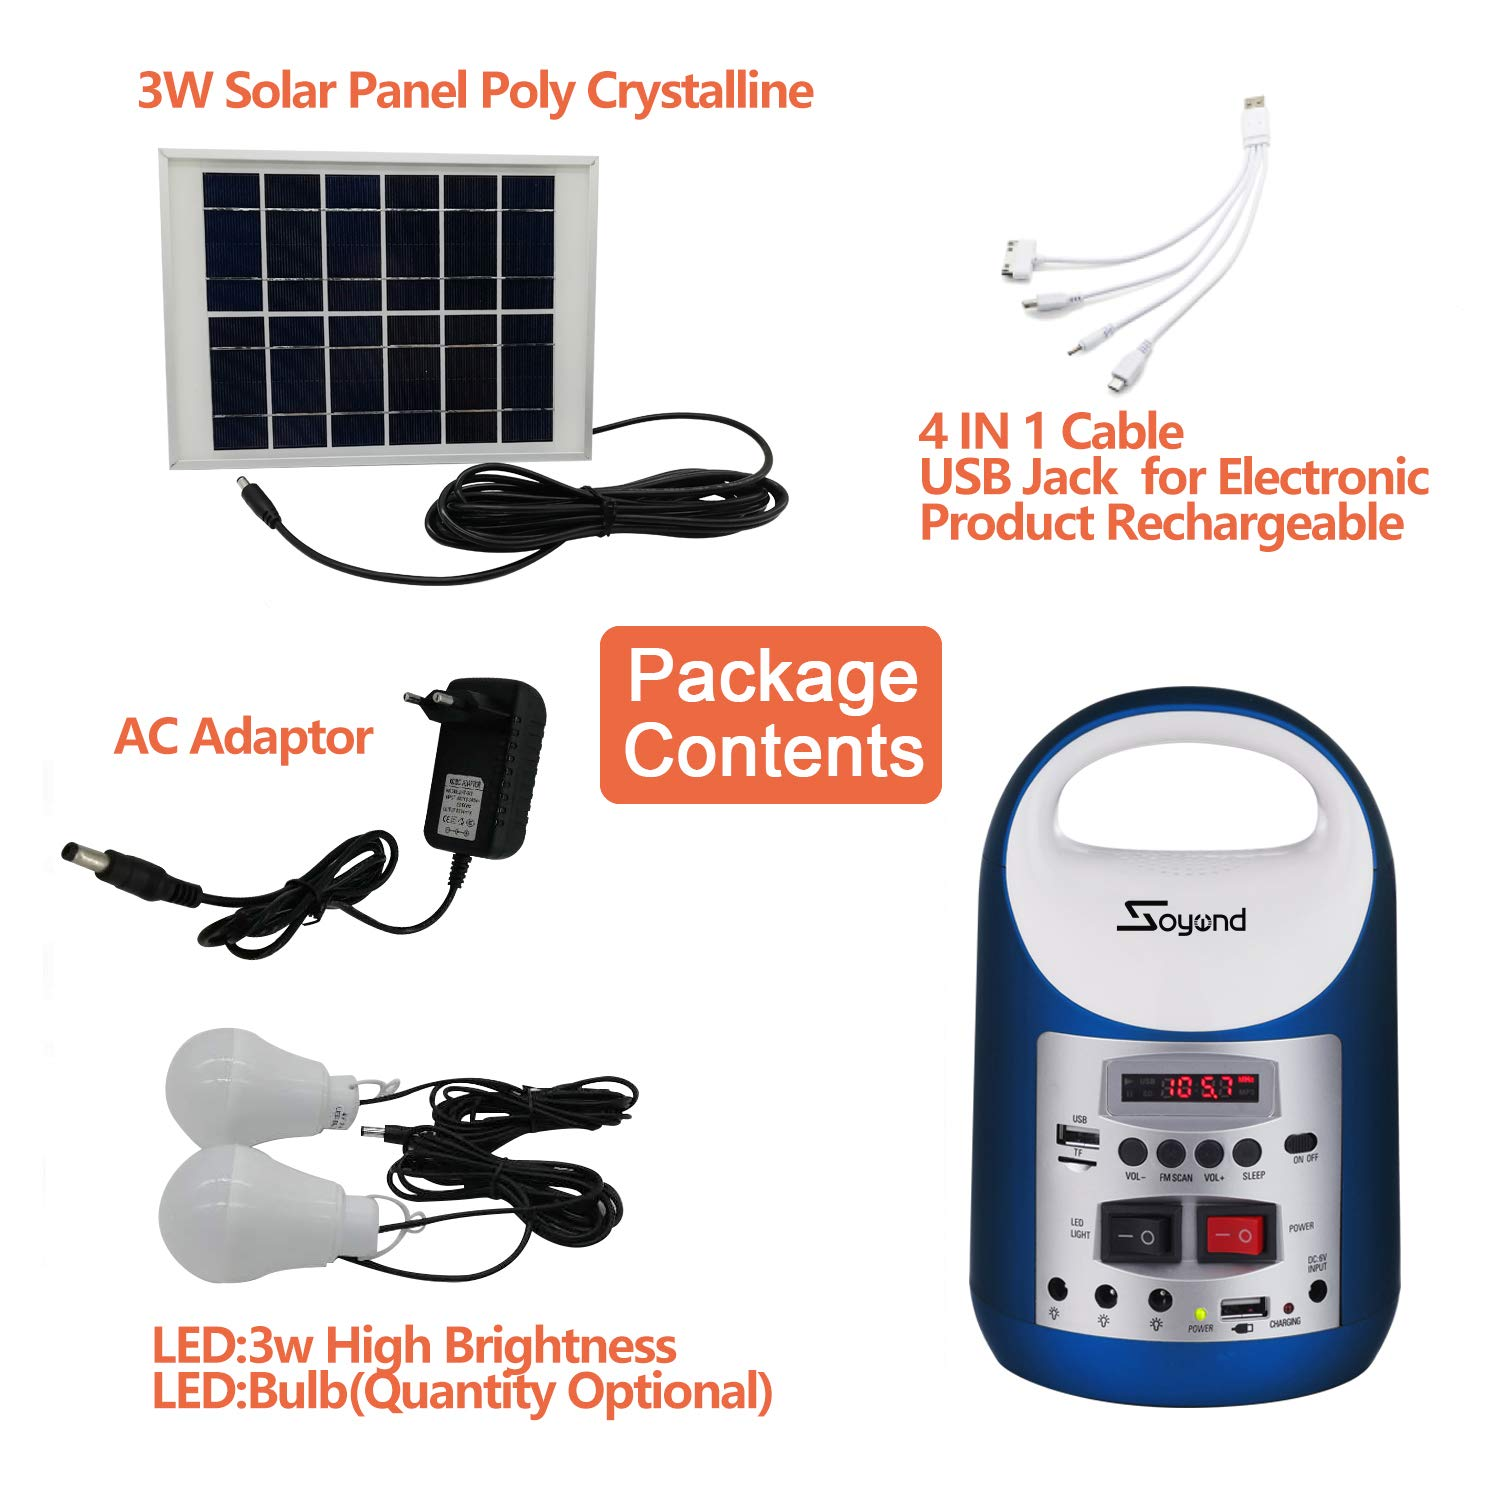 soyond Portable Solar Generator with Solar Panel Solar Powered Generator Inverter Small Basic Portable Electric Generator Kit by soyond (Image #6)